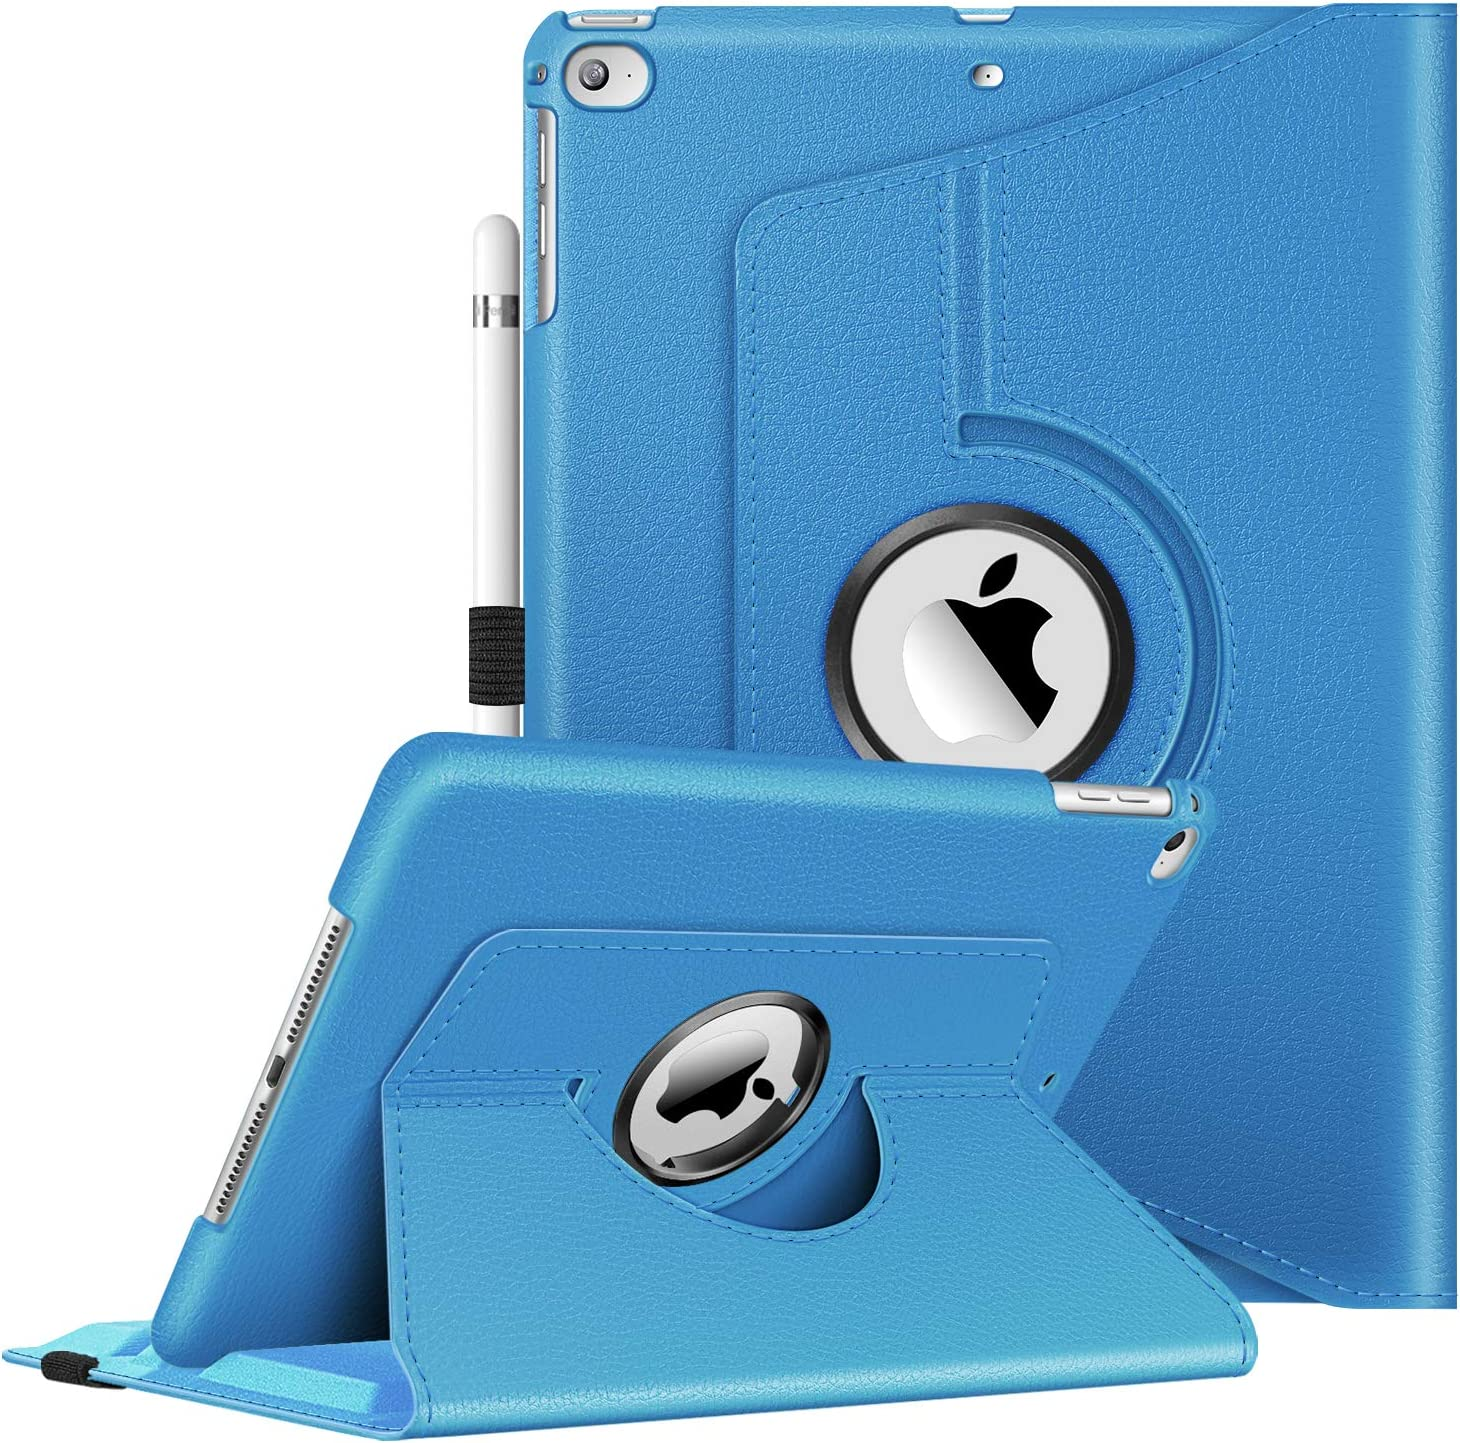 Free Screen Protector /& Stylus PU Leather 360 degree rotation stand iPad 5 case for Apple ipad Air 5th Generation Retina display Blue